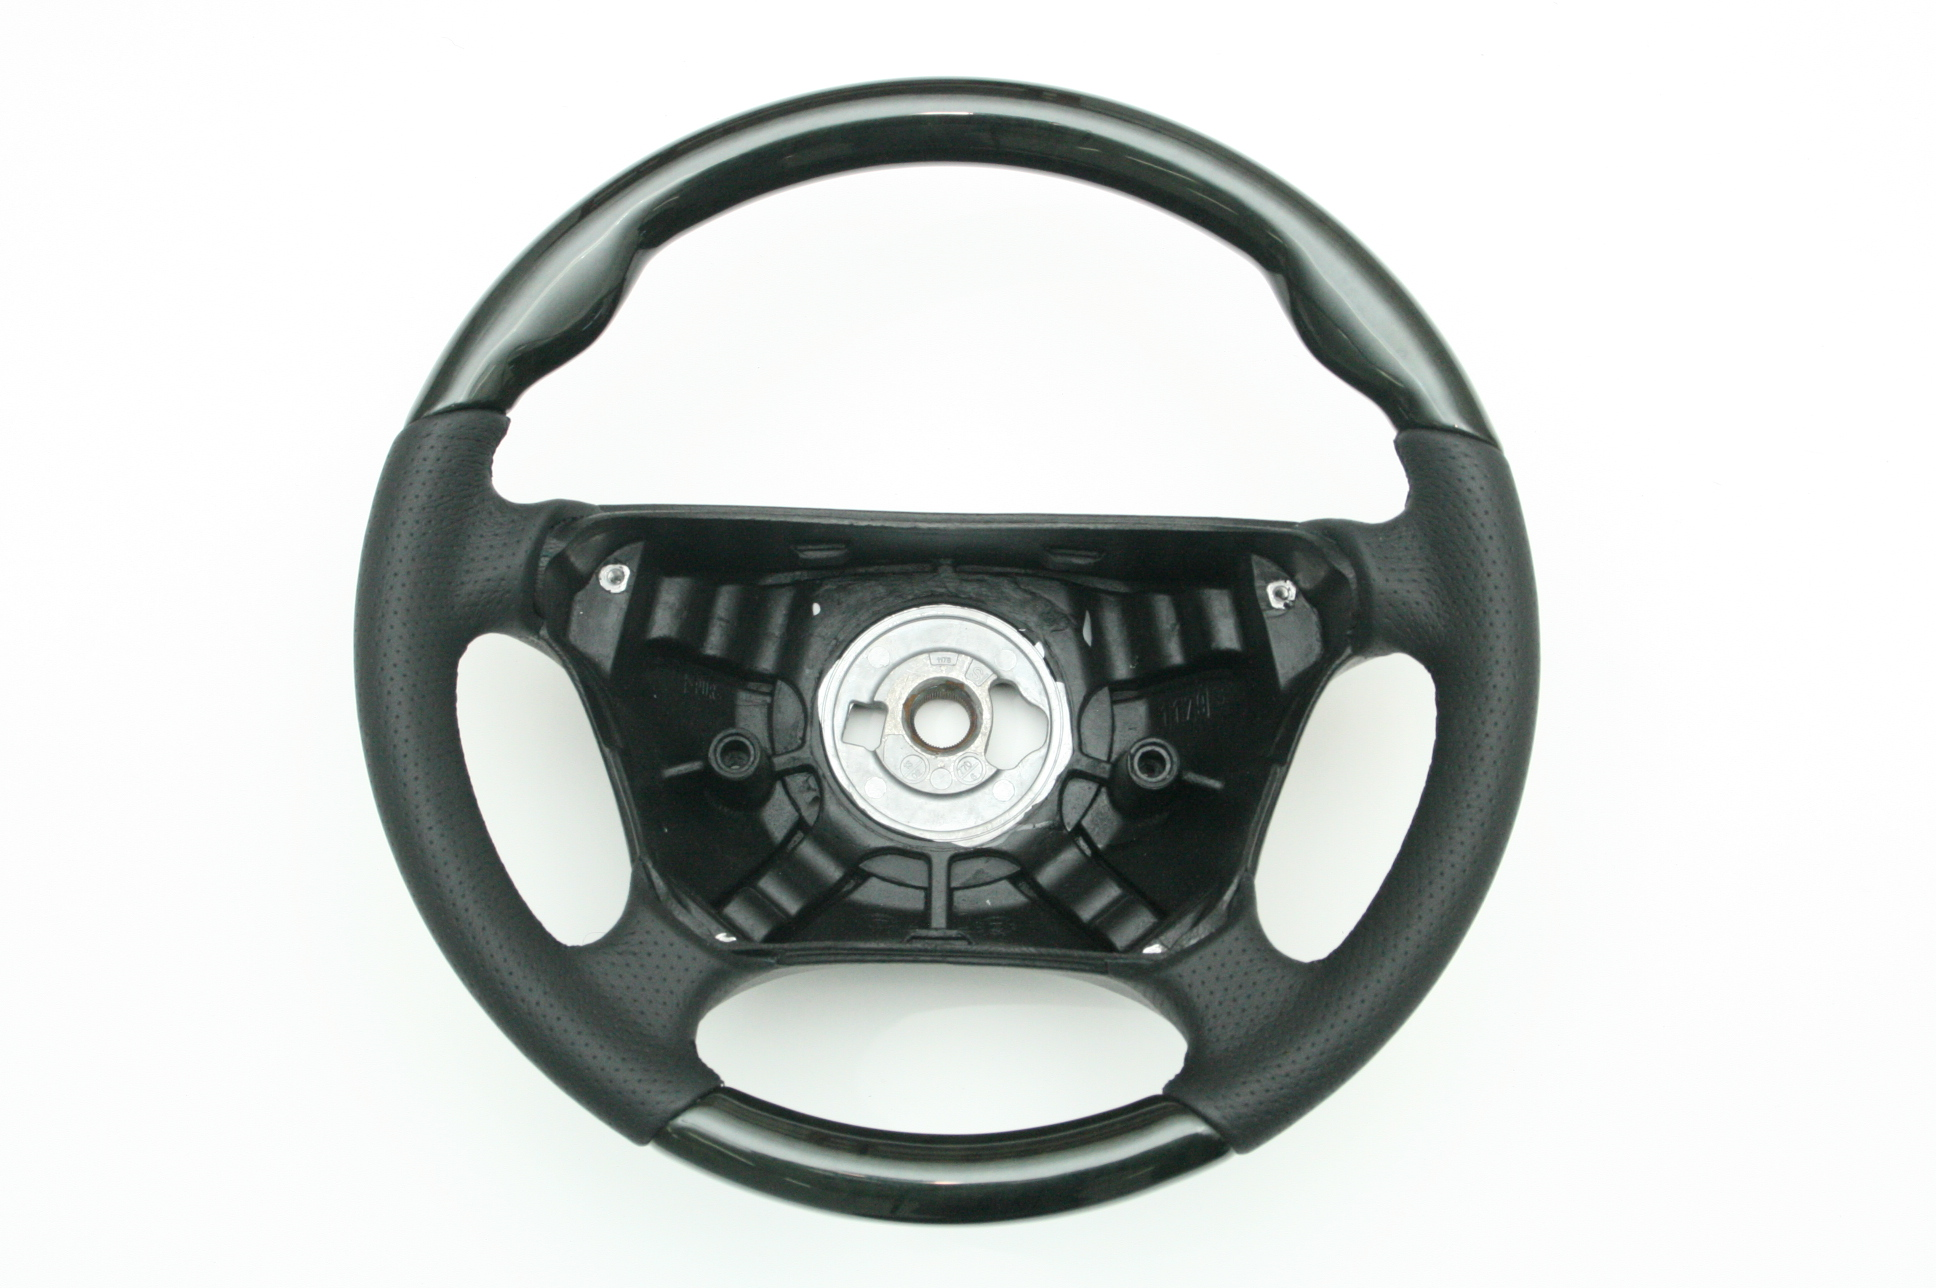 Mercedes benz e350 steering wheel cover fiat world test for Mercedes benz steering wheel cover